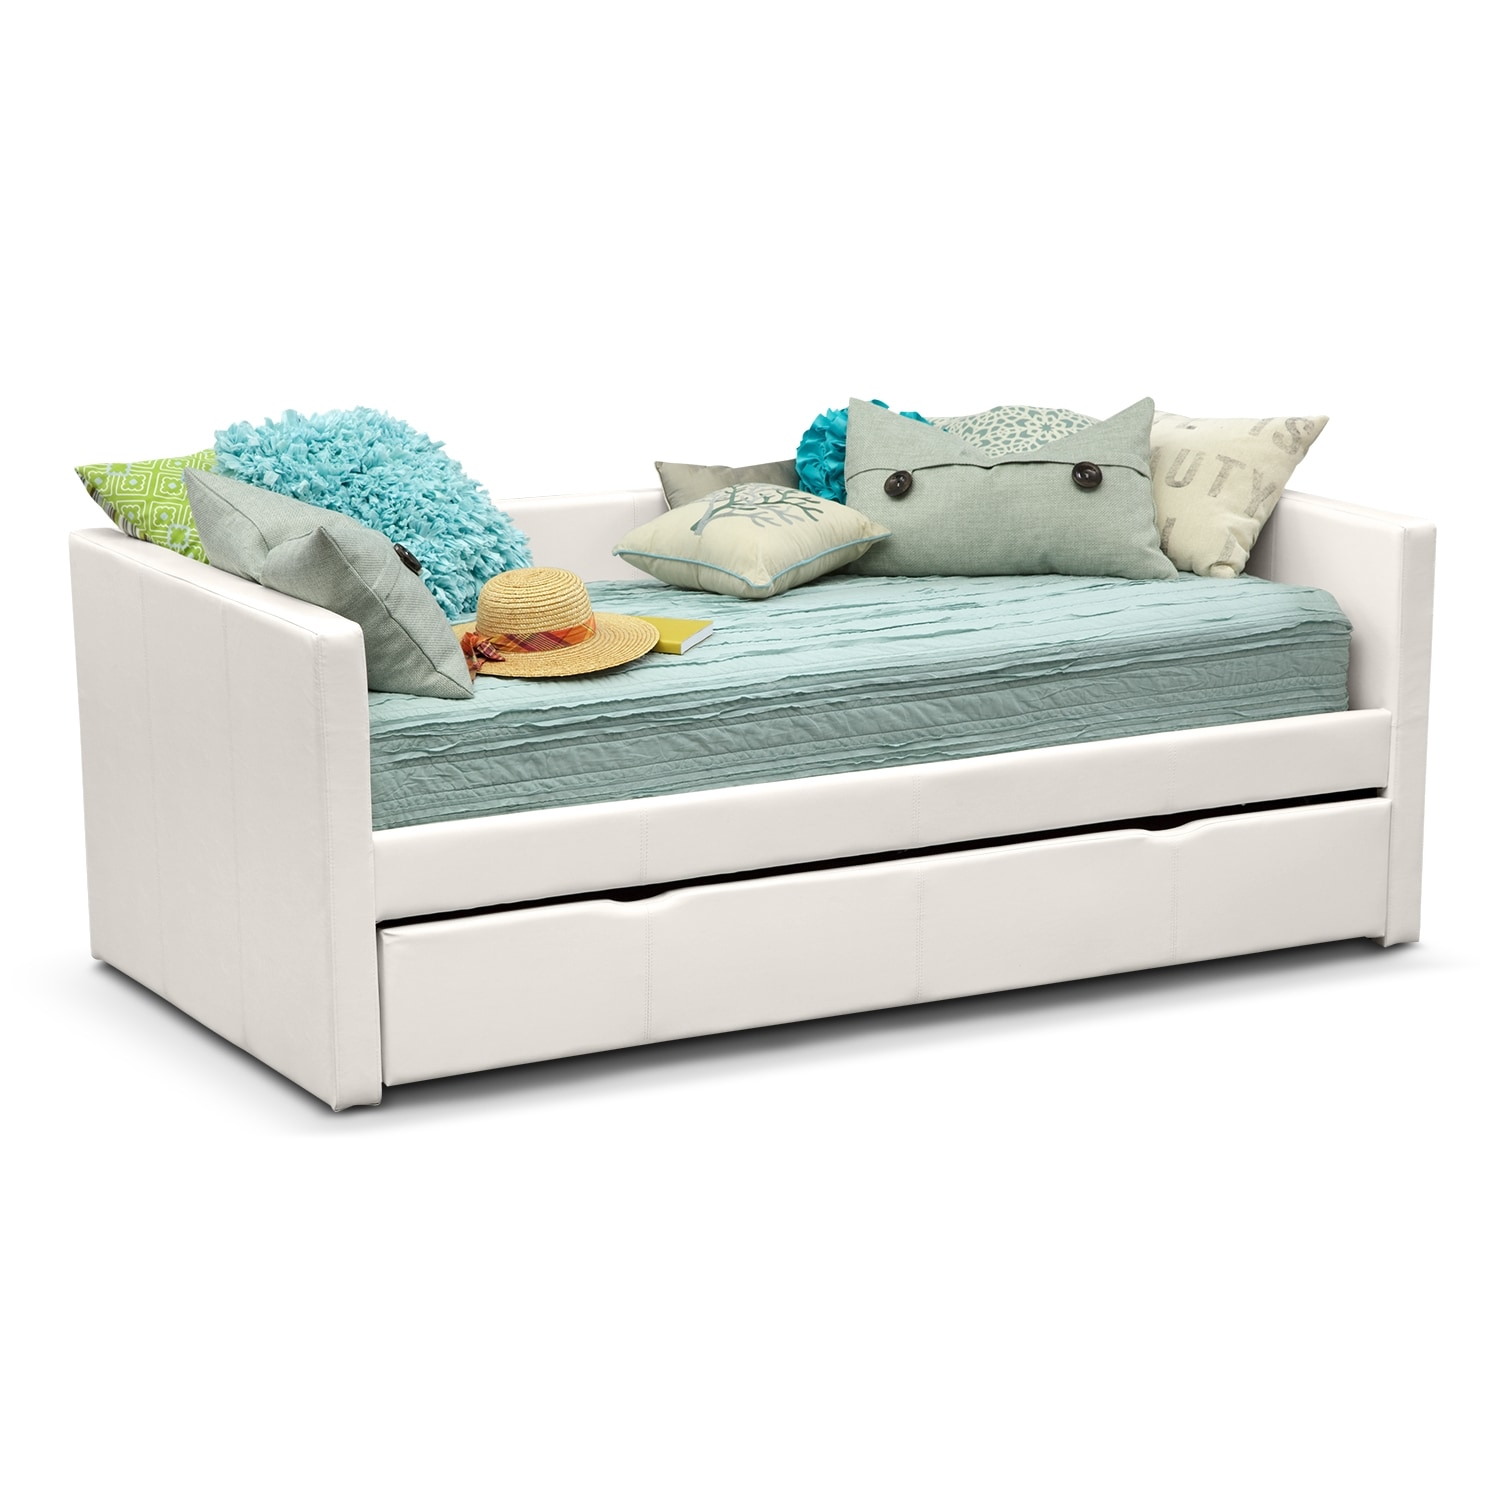 Carey Twin Daybed with Trundle - White - Carey Twin Daybed With Trundle - White Value City Furniture